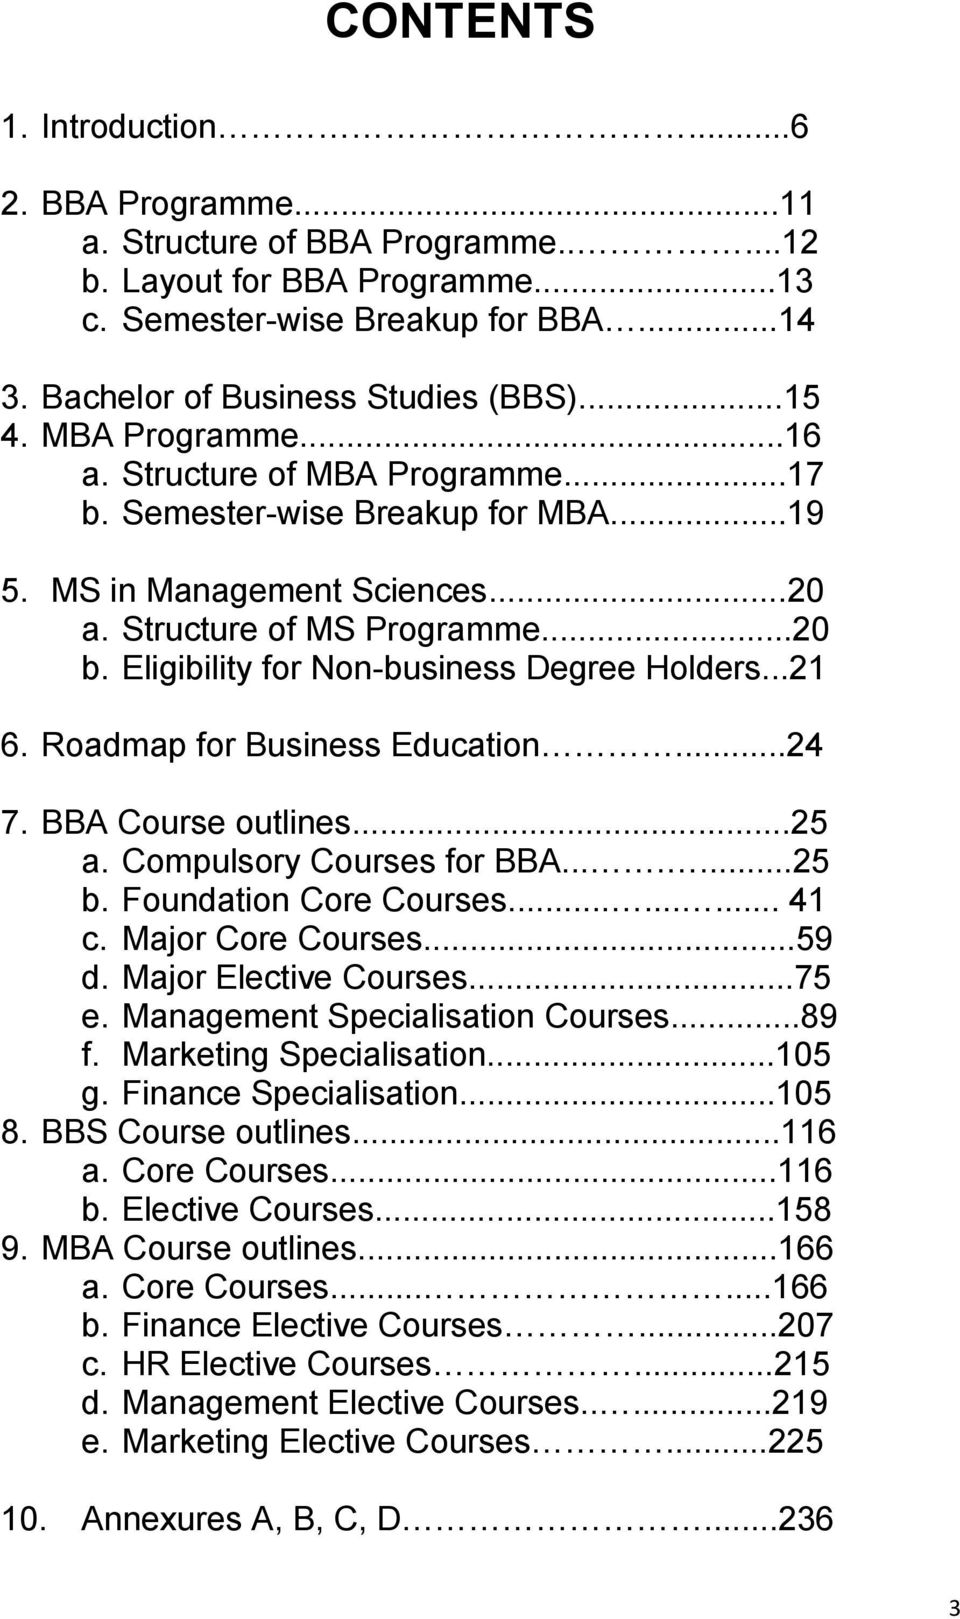 Eligibility for Non-business Degree Holders...21 6. Roadmap for Business Education...24 7. BBA Course outlines...25 a. Compulsory Courses for BBA.......25 b. Foundation Core Courses......... 41 c.